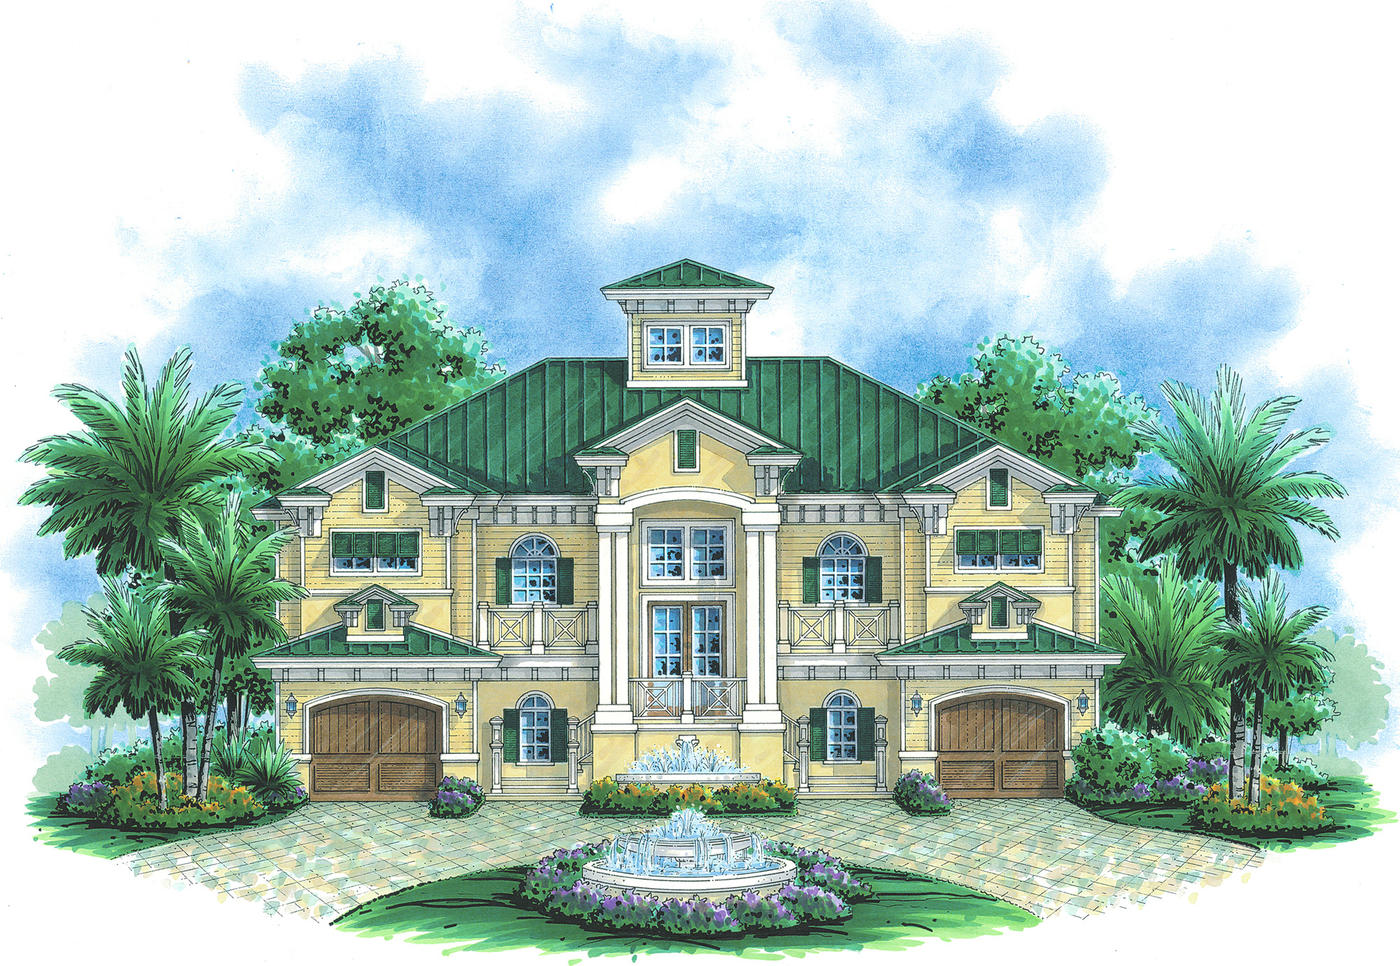 Residential house plans portfolio lotus architecture for Residential home design styles